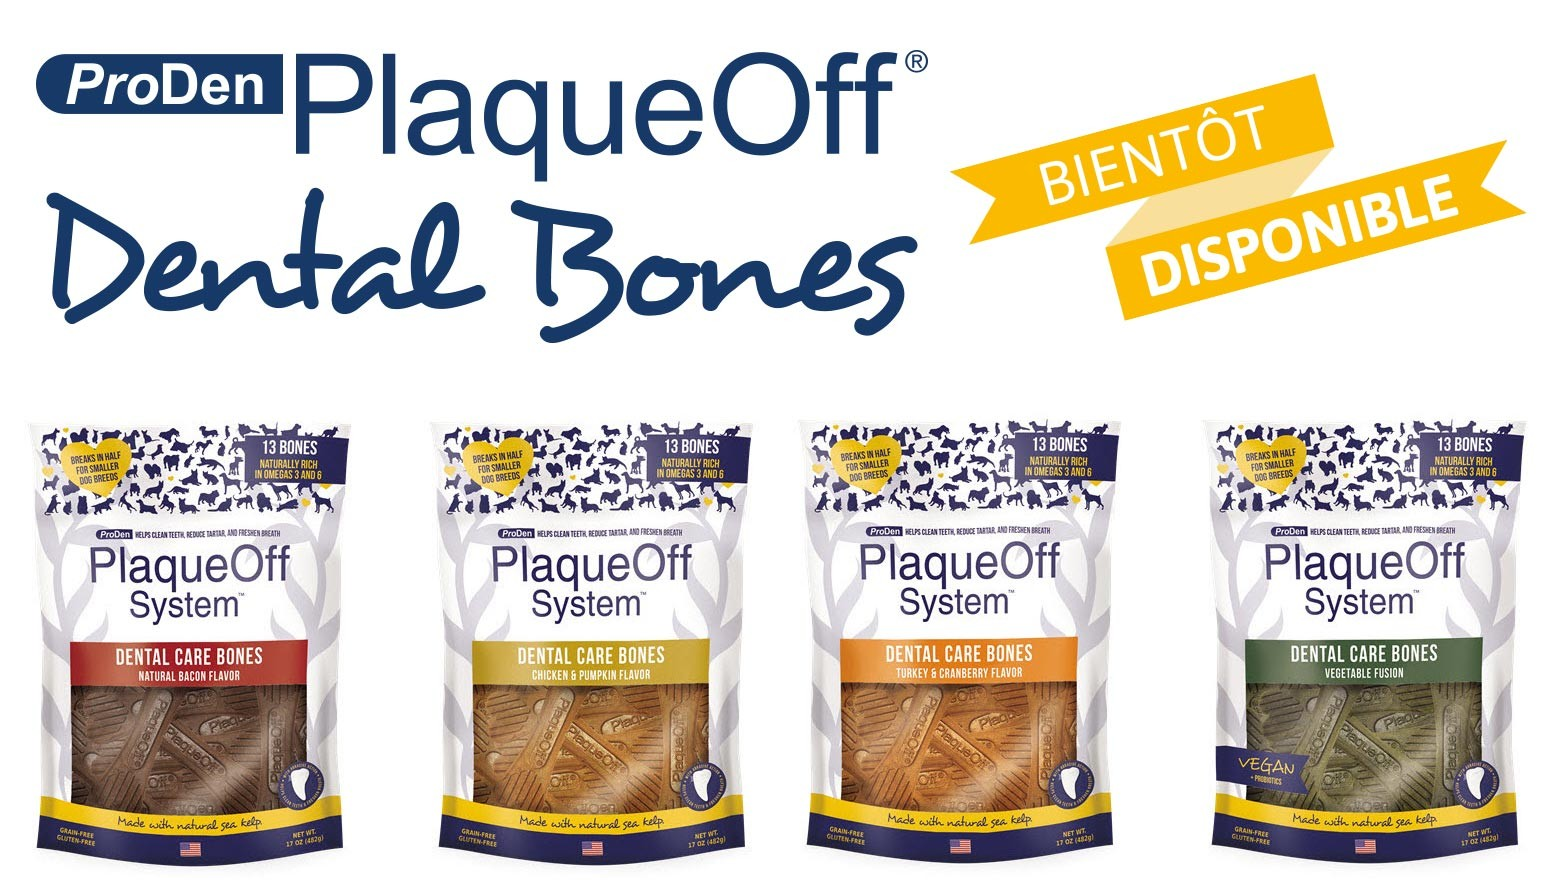 Dental Bones, bientôt disponible